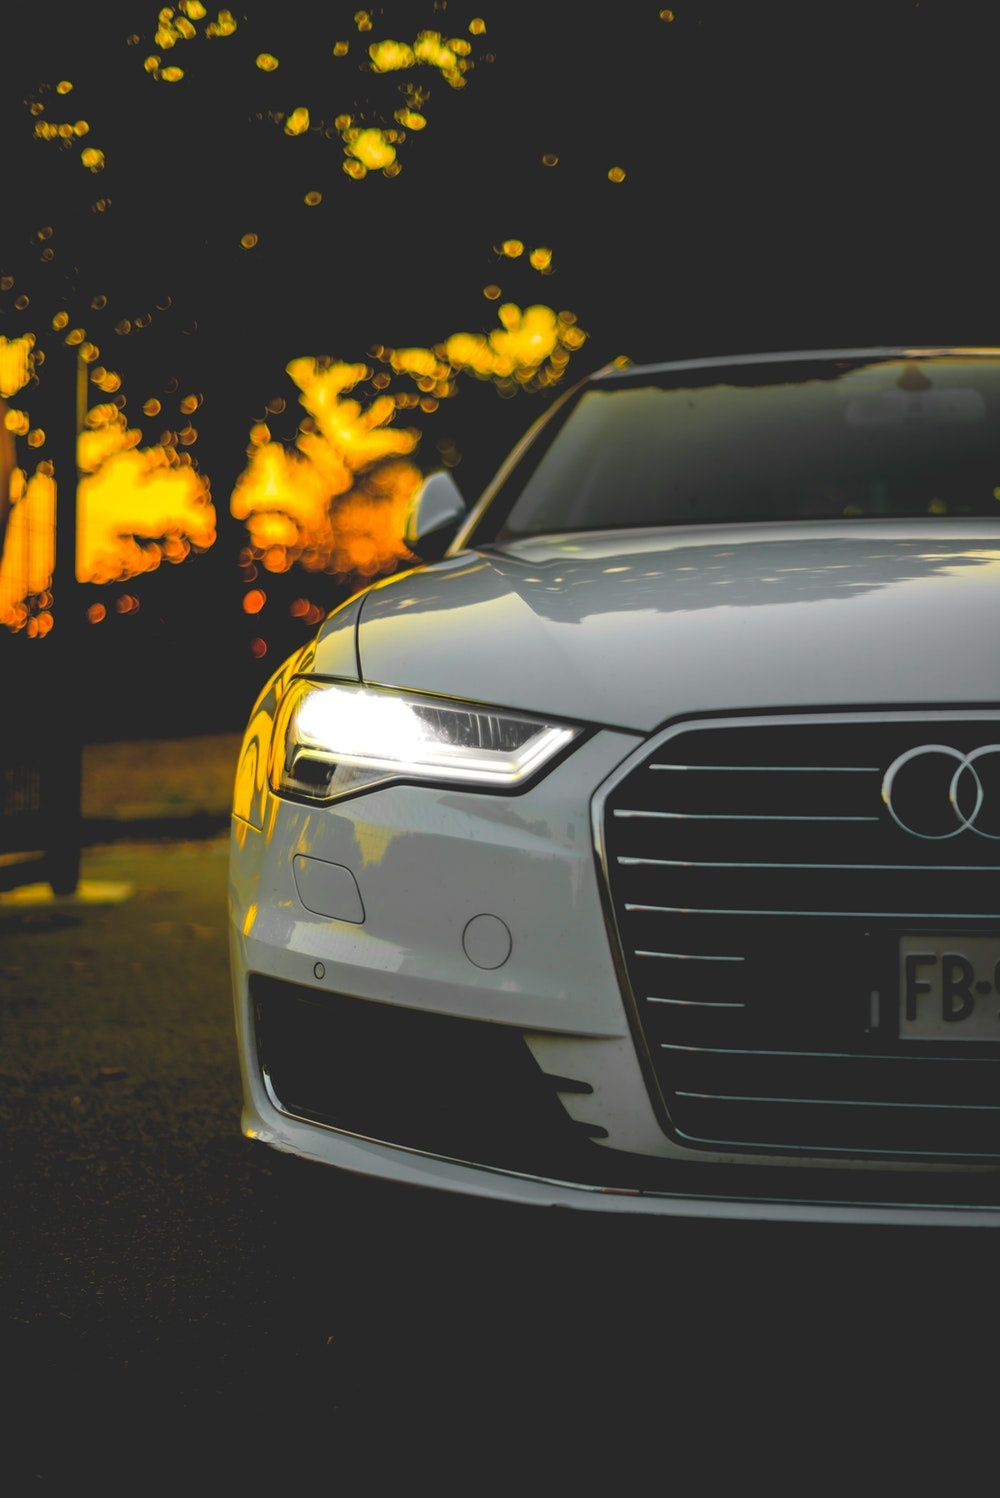 Audi Modified Cars Best Of 500 Audi Pictures Hd Download Free Images On Unsplash-1497 Of Inspirational Audi Modified Cars